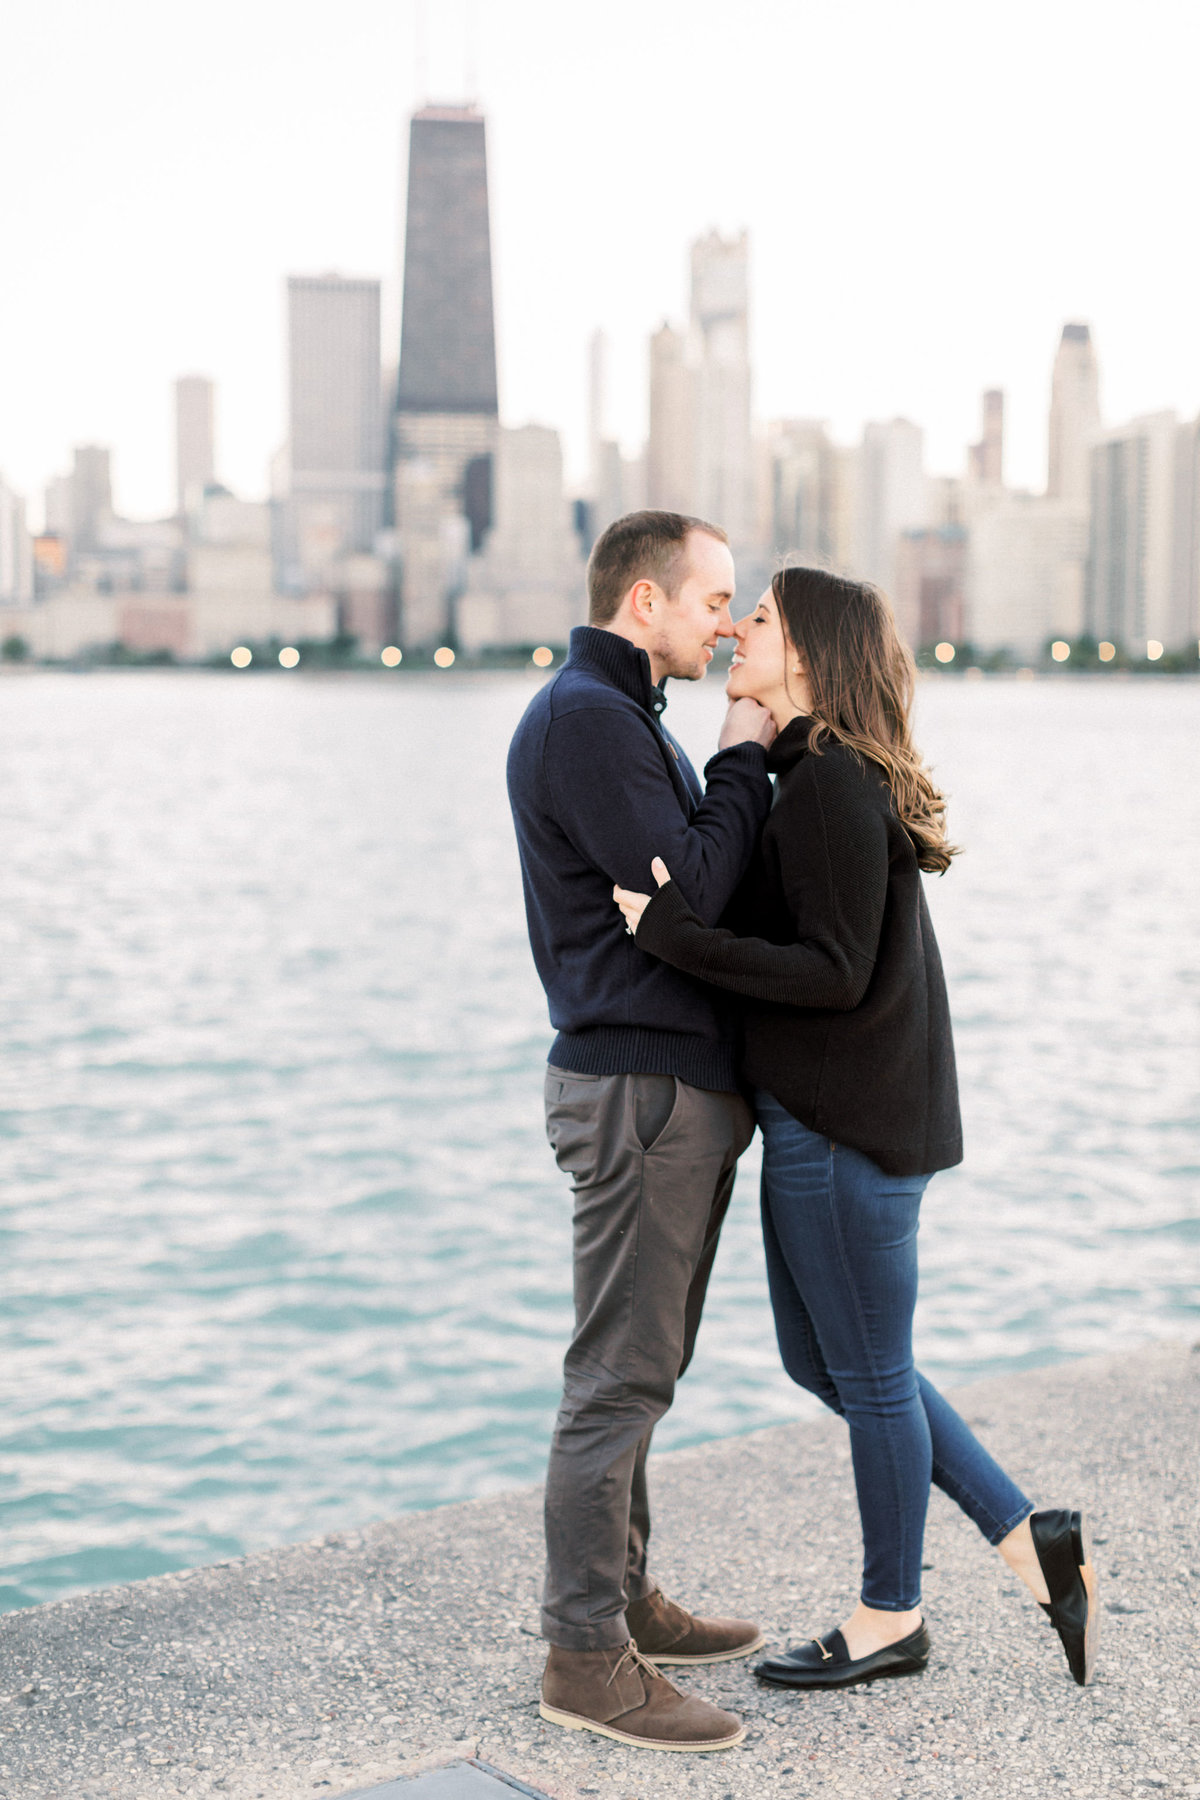 TiffaneyChildsPhotography-ChicagoWeddingPhotographer-Nicole+Christopher-WashingtonSquare&NorthAvenueEngagementSession-148